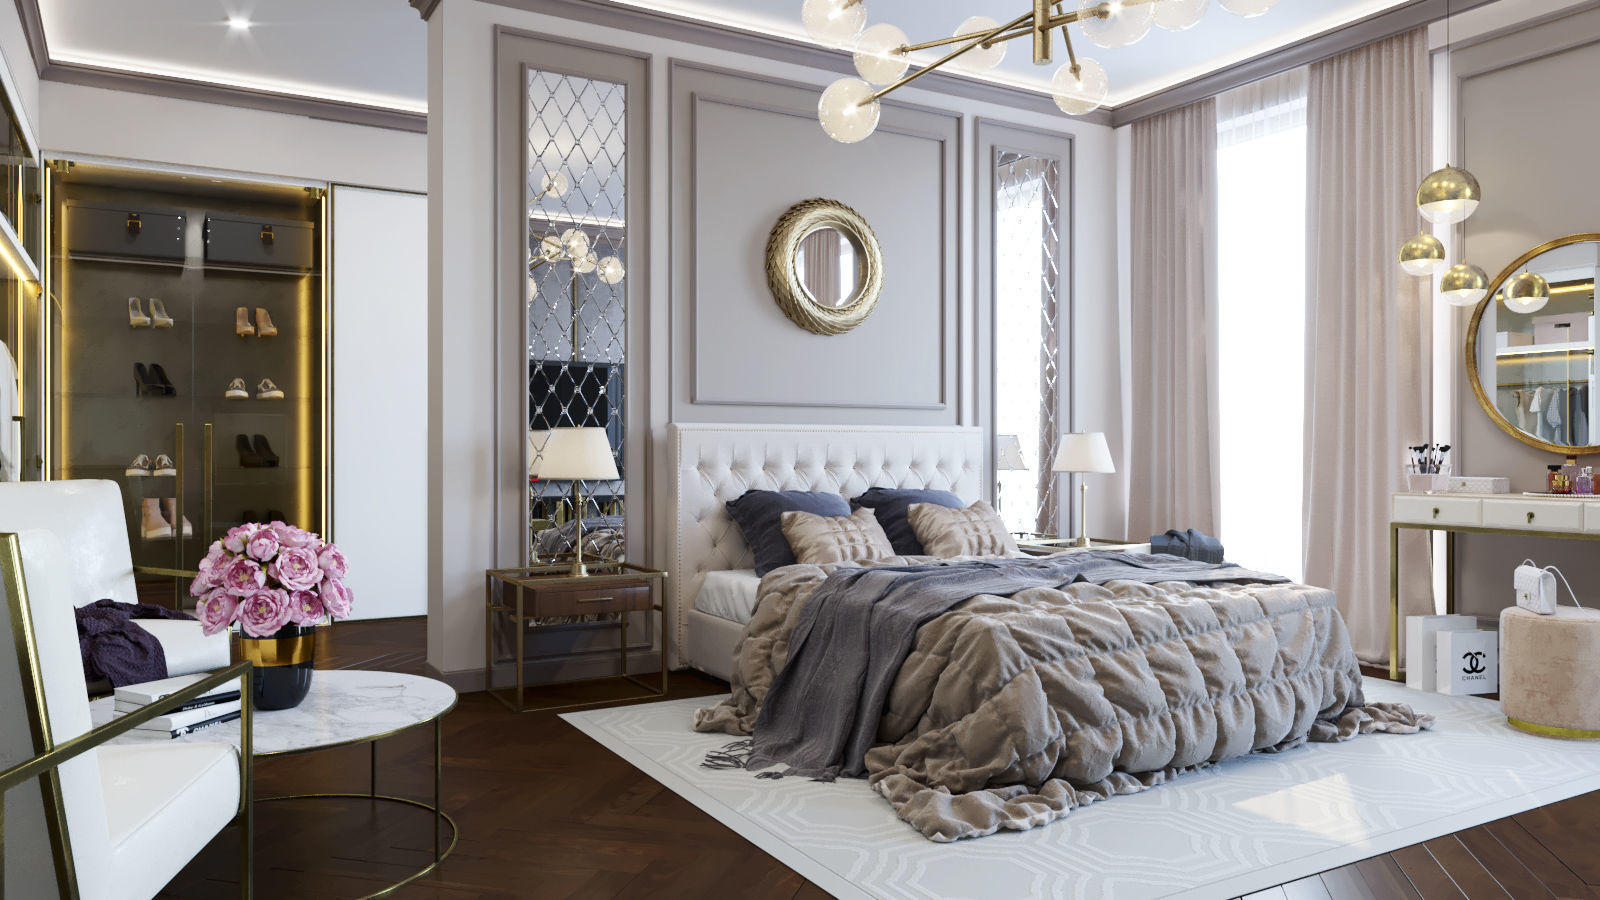 The  neoclassical style bedroom